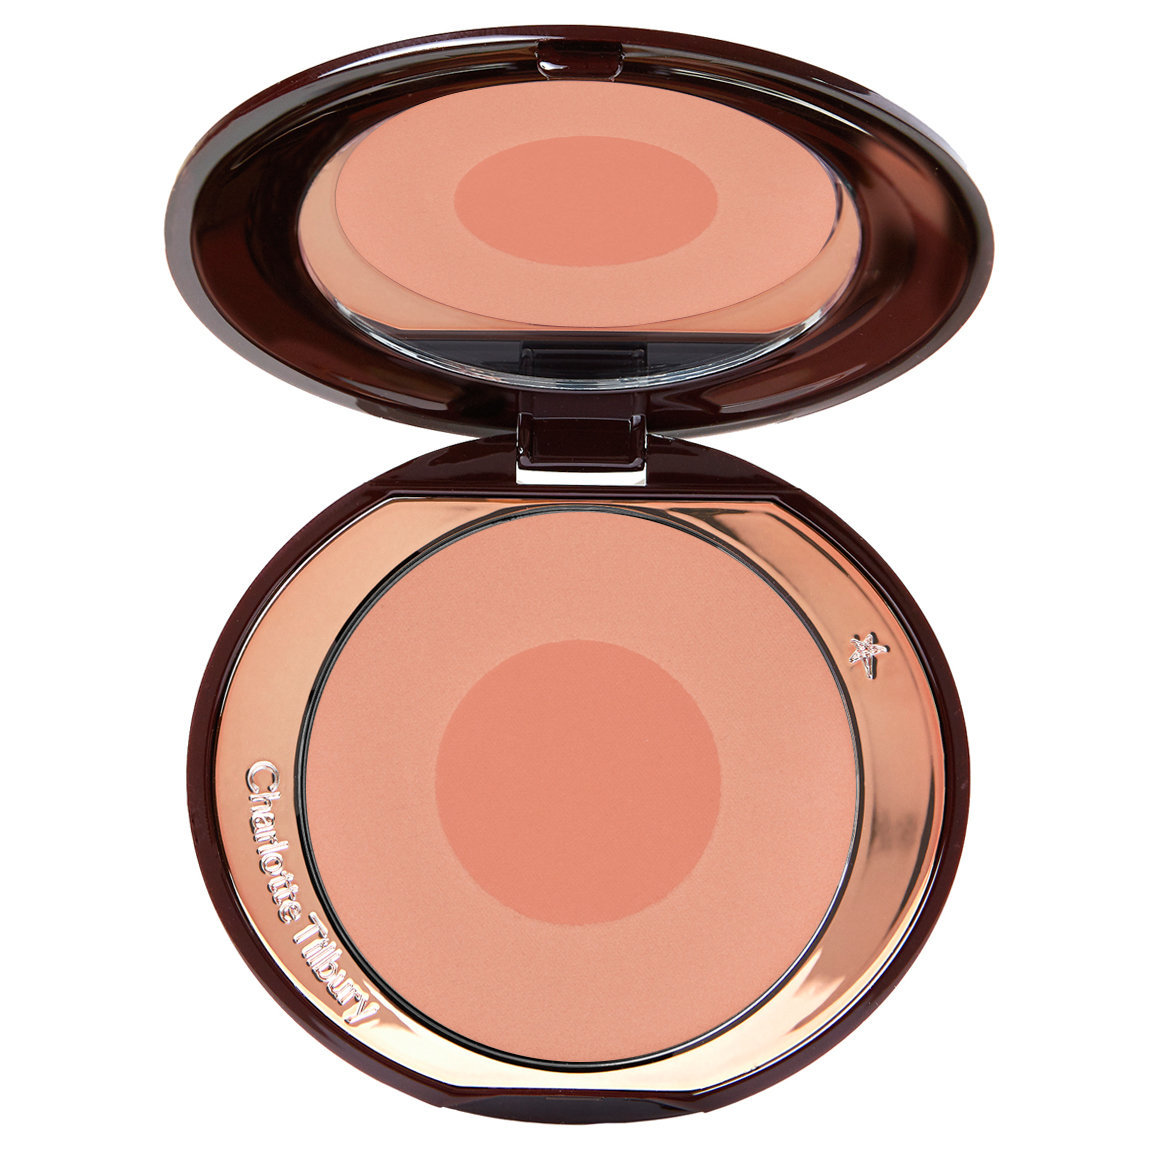 Charlotte Tilbury Cheek To Chic First Love alternative view 1 - product swatch.